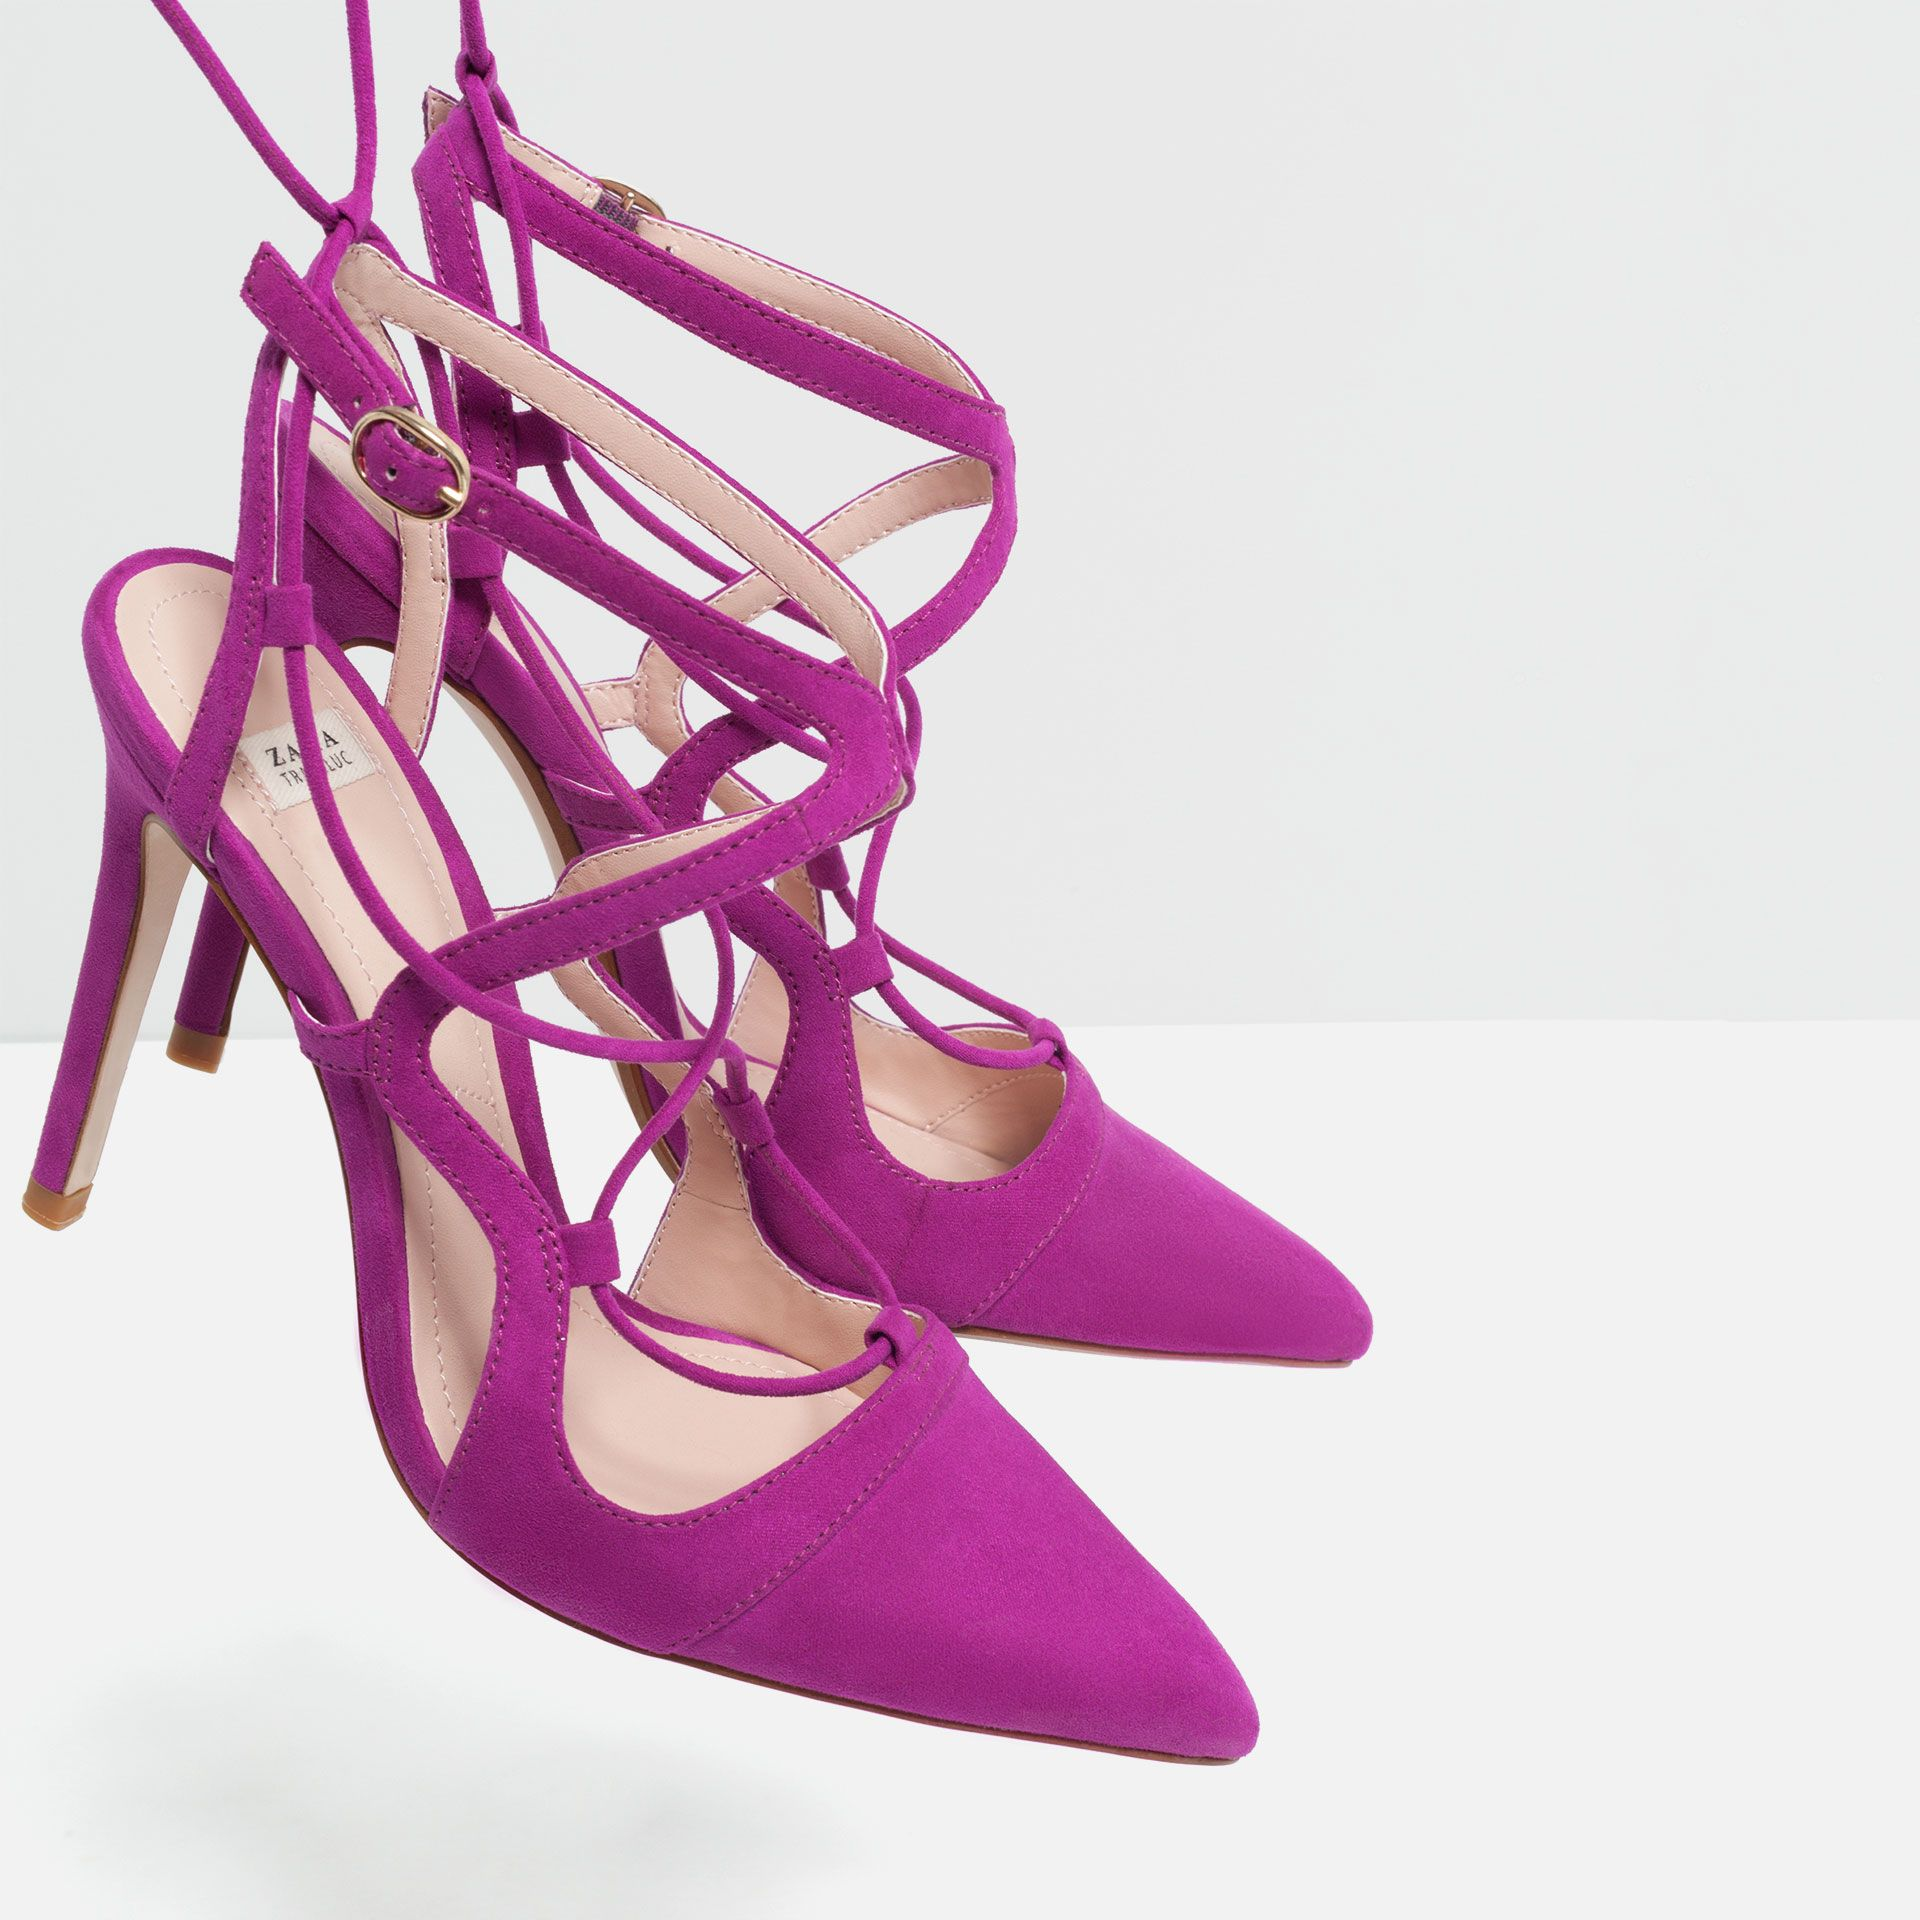 53fa40e9424 Pin by Demi on * High-heeled ♥* ~~ | Shoes, Lace up shoes, Zara shoes